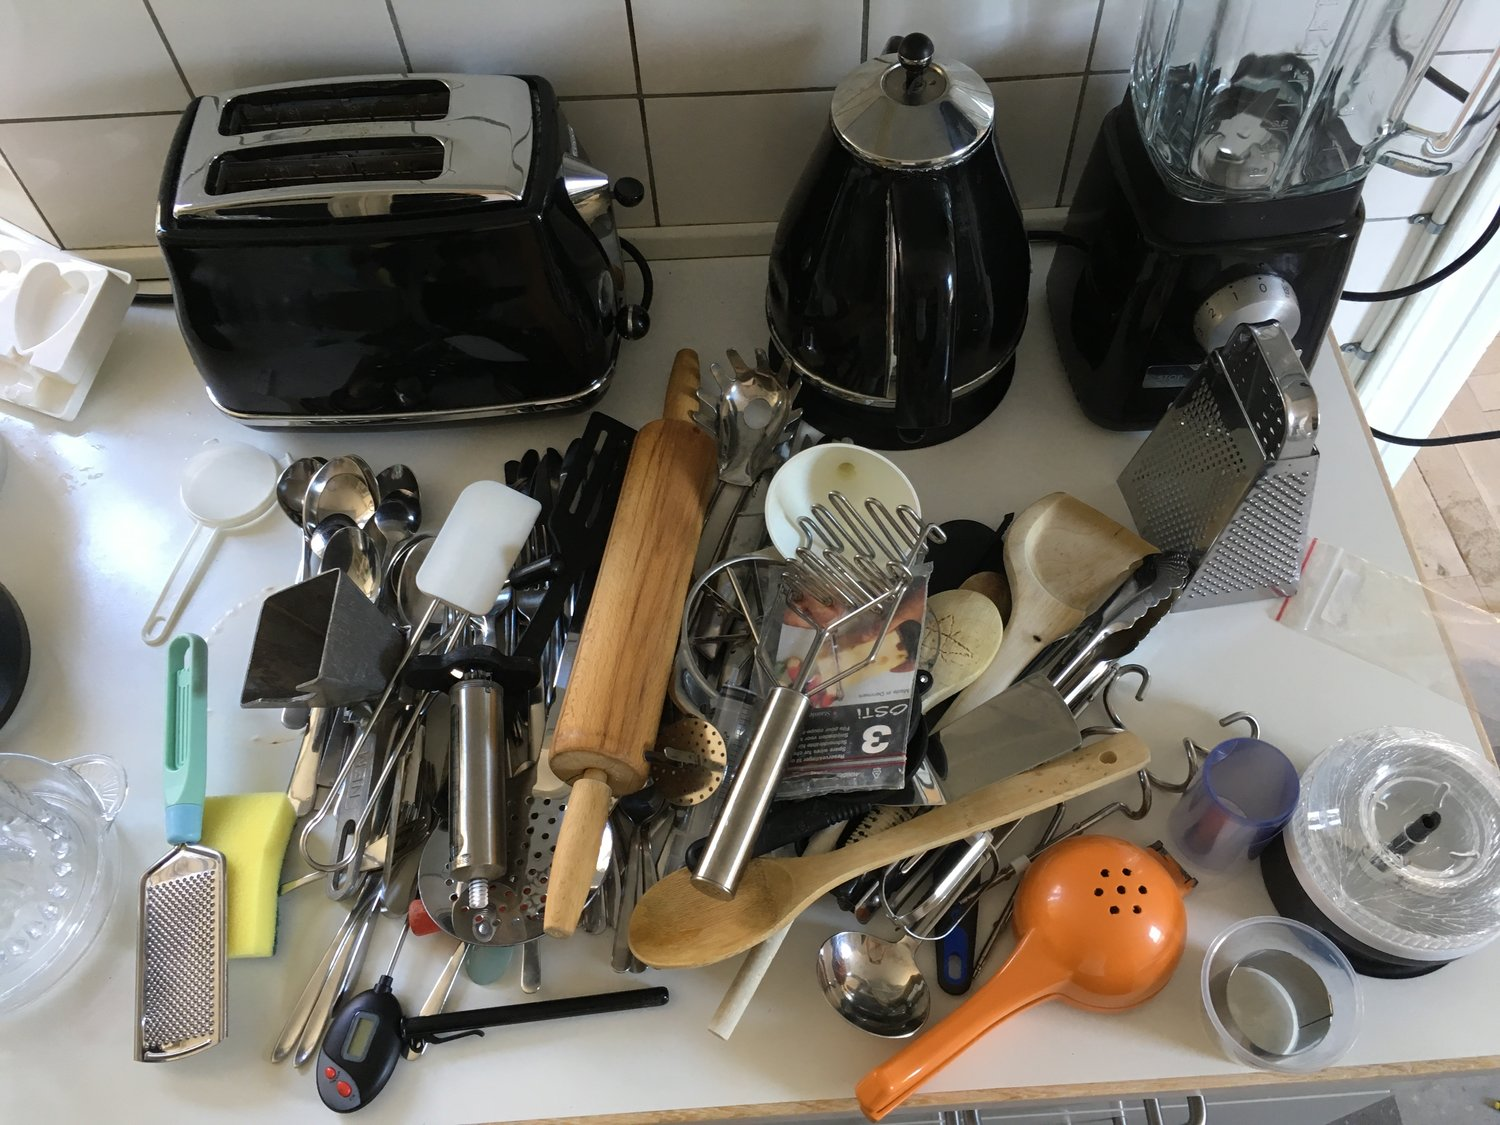 Kitchen tools during